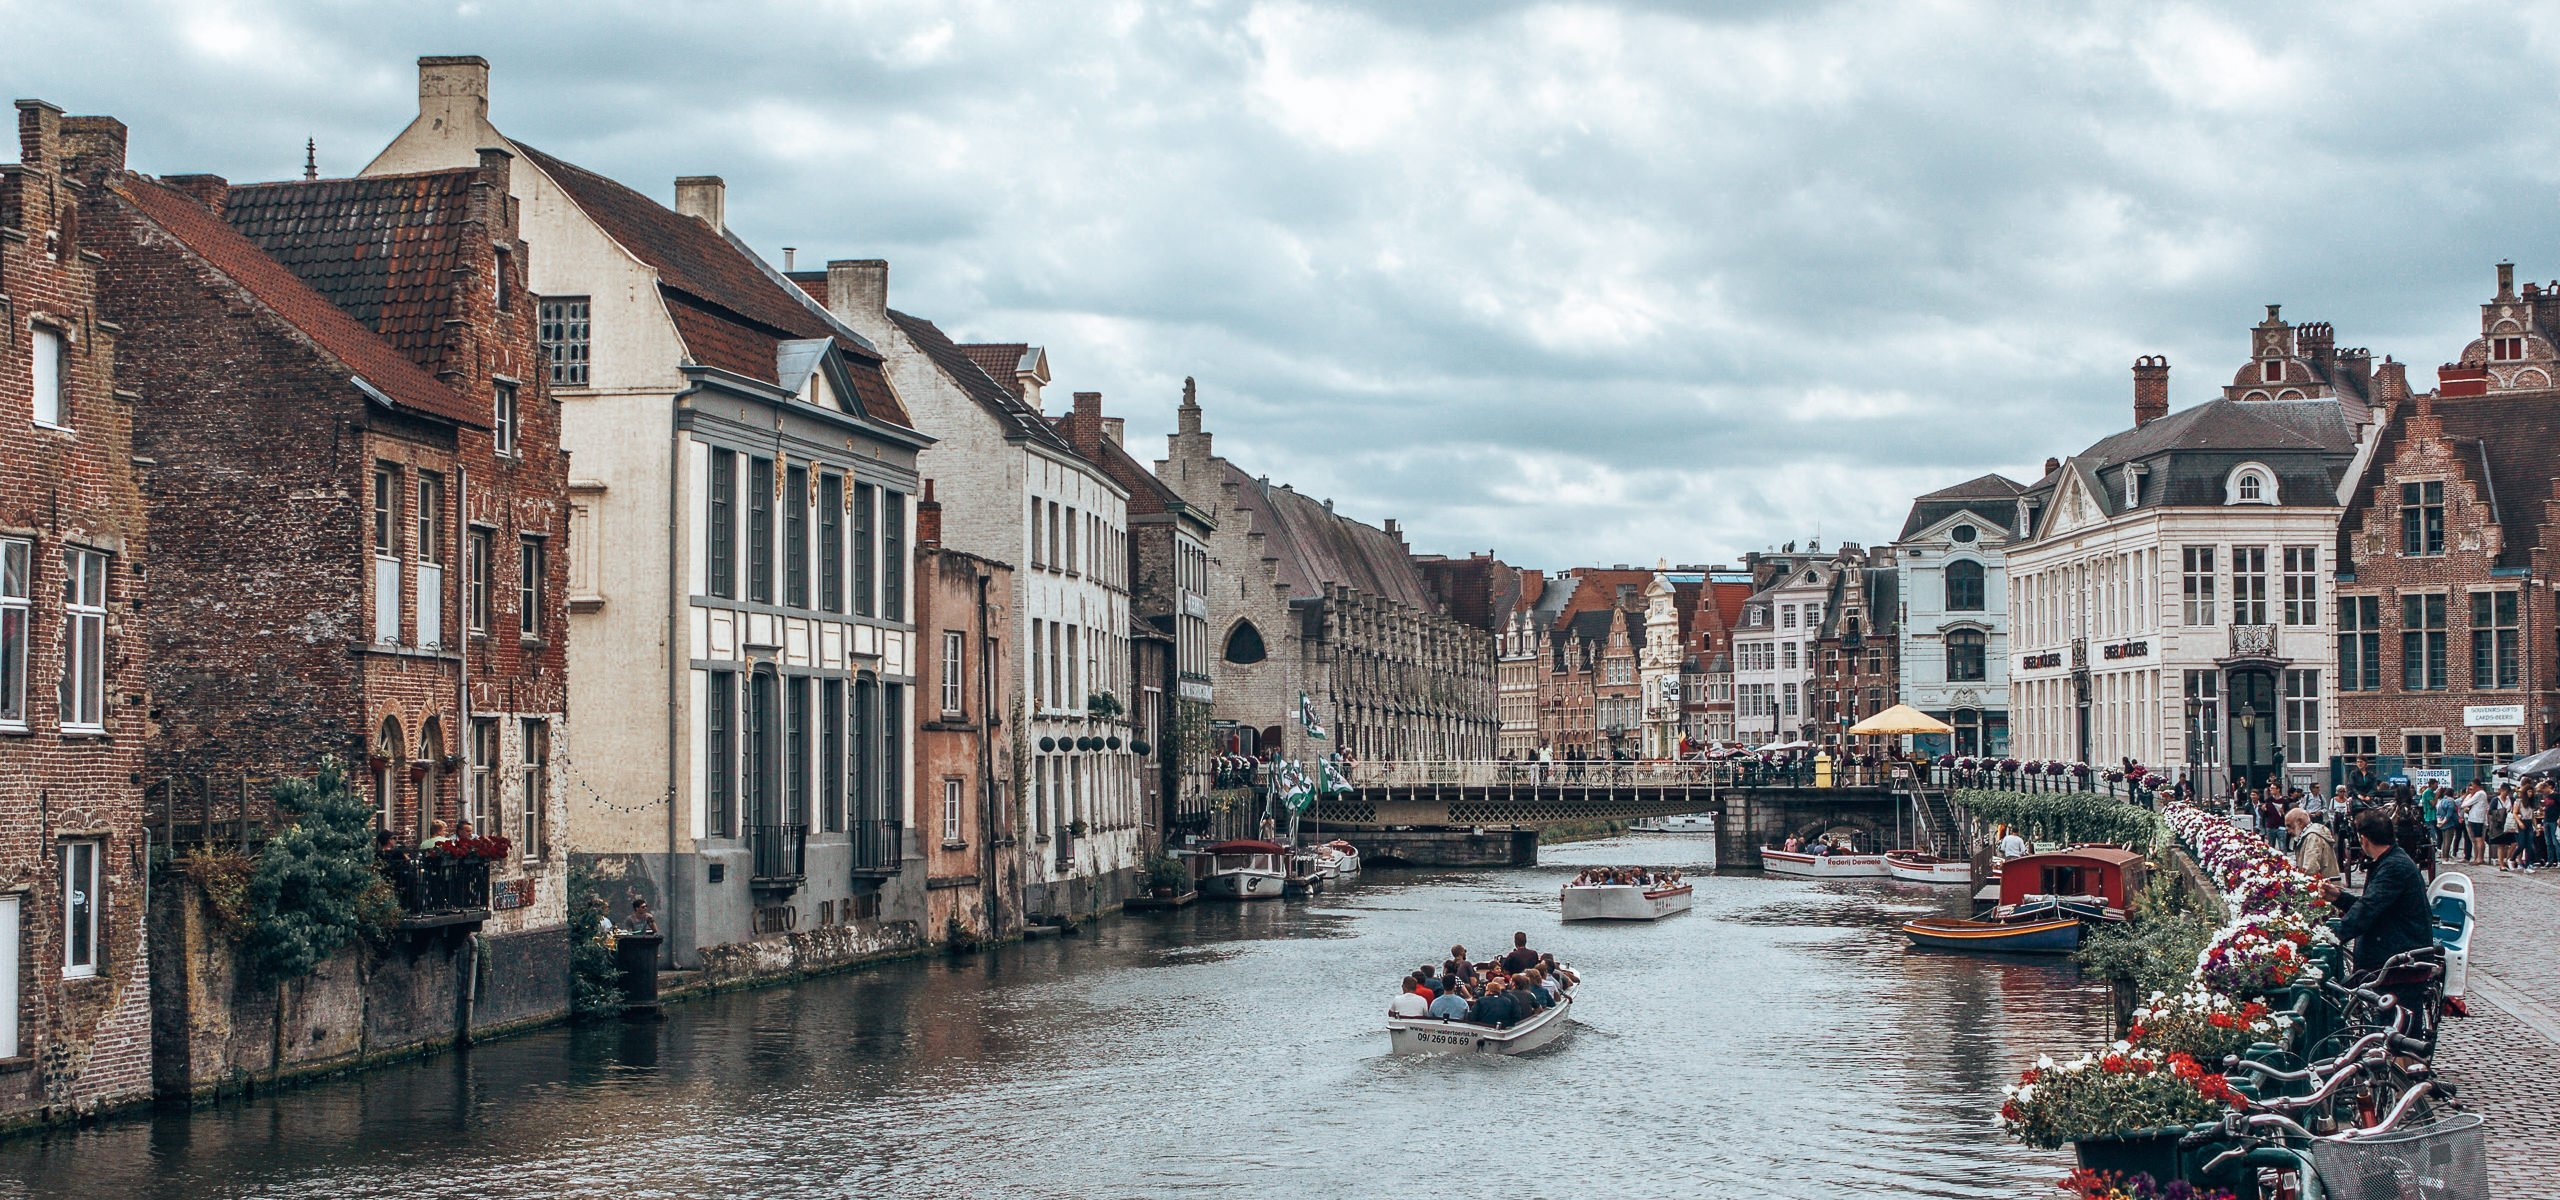 The canals of Ghent, Belgium